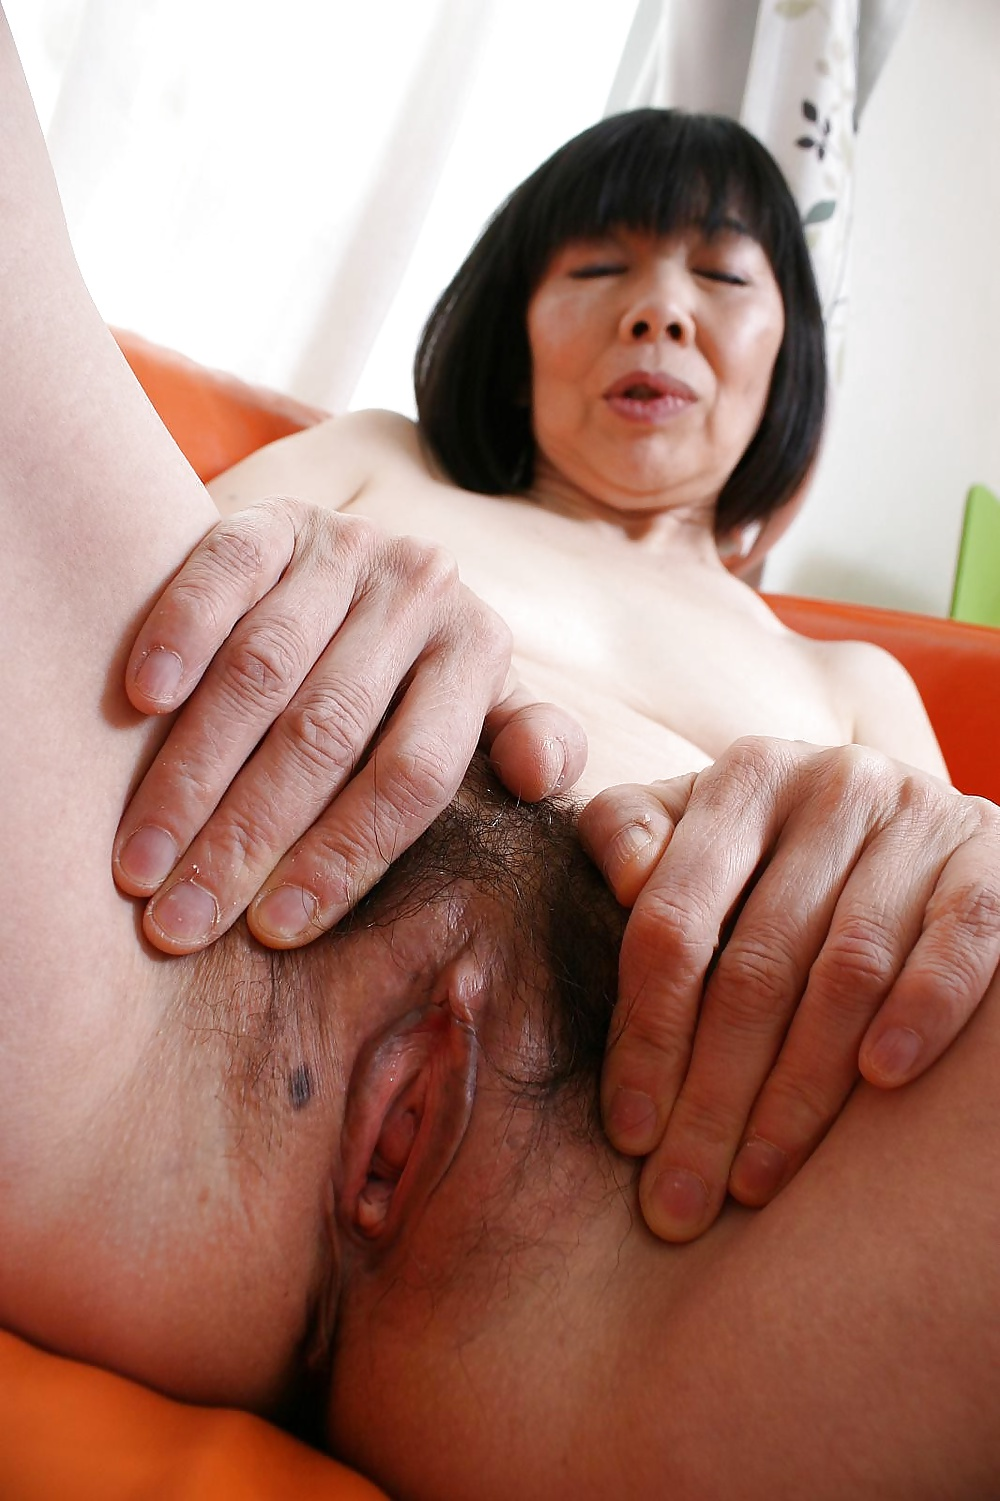 Asian Granny Gallery 79